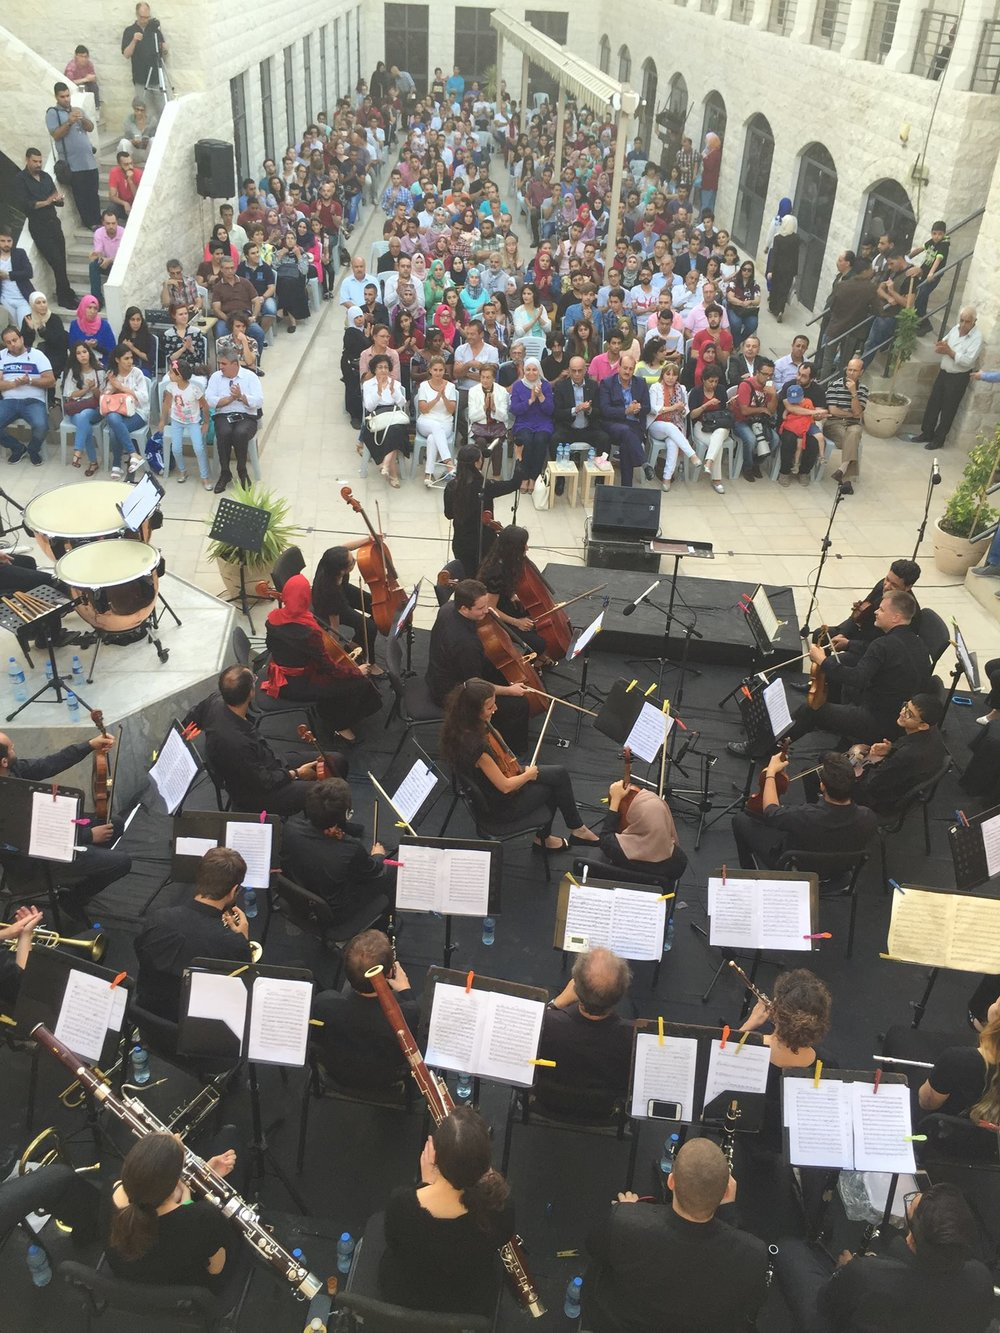 NABLUS, WEST BANK   Palestinian musicians and musicians all over the world joined together for this concert tour.